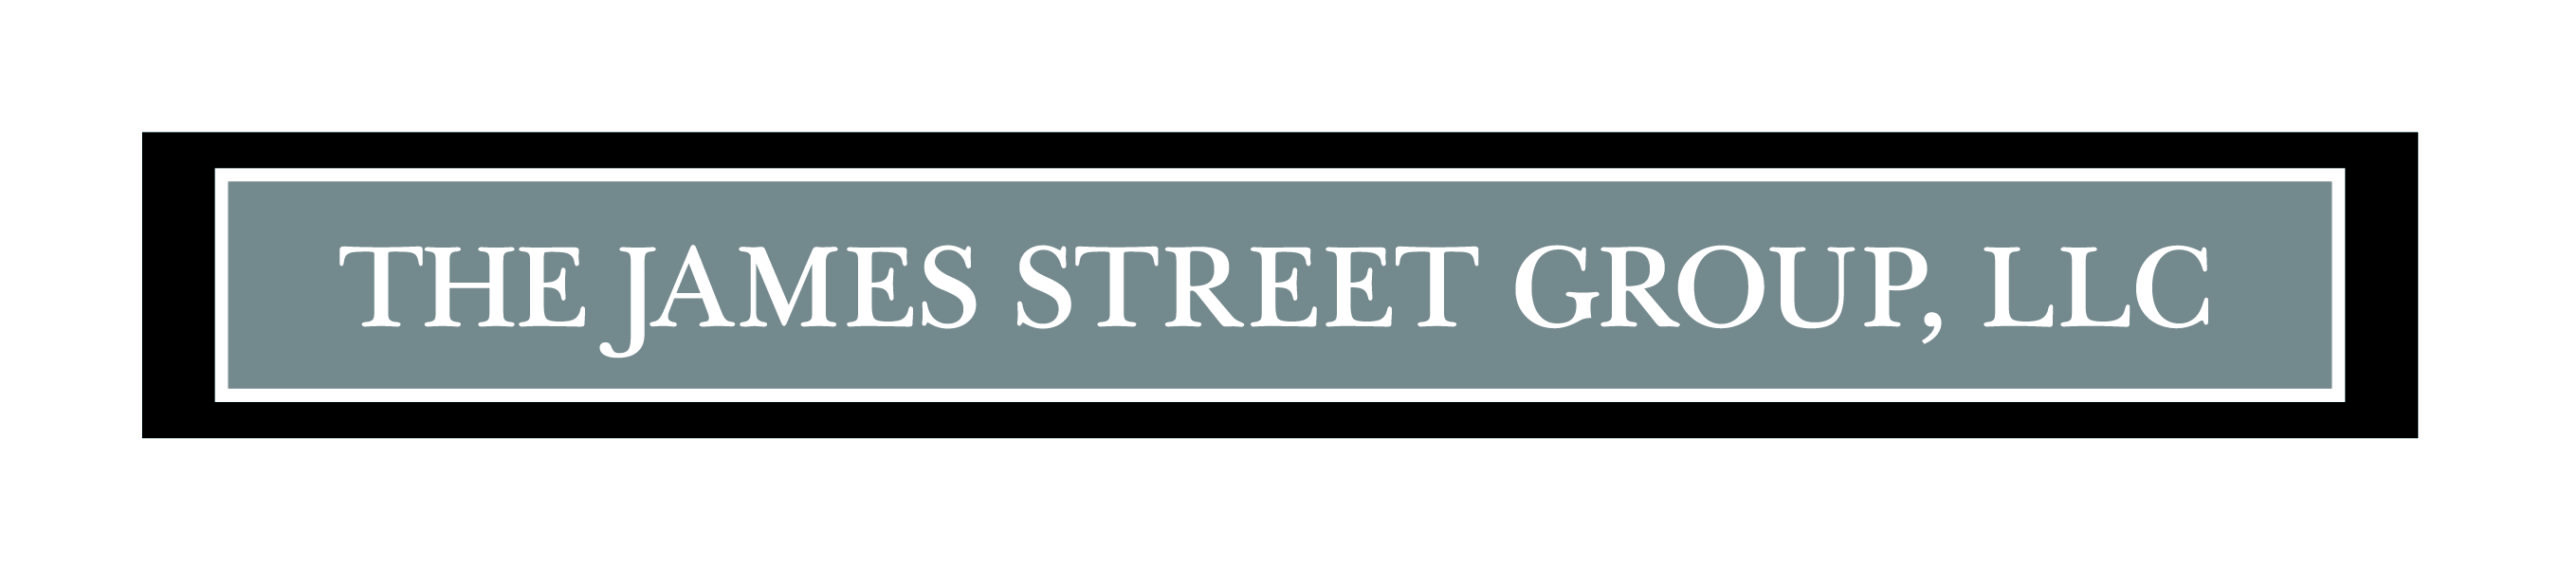 The James Street Group